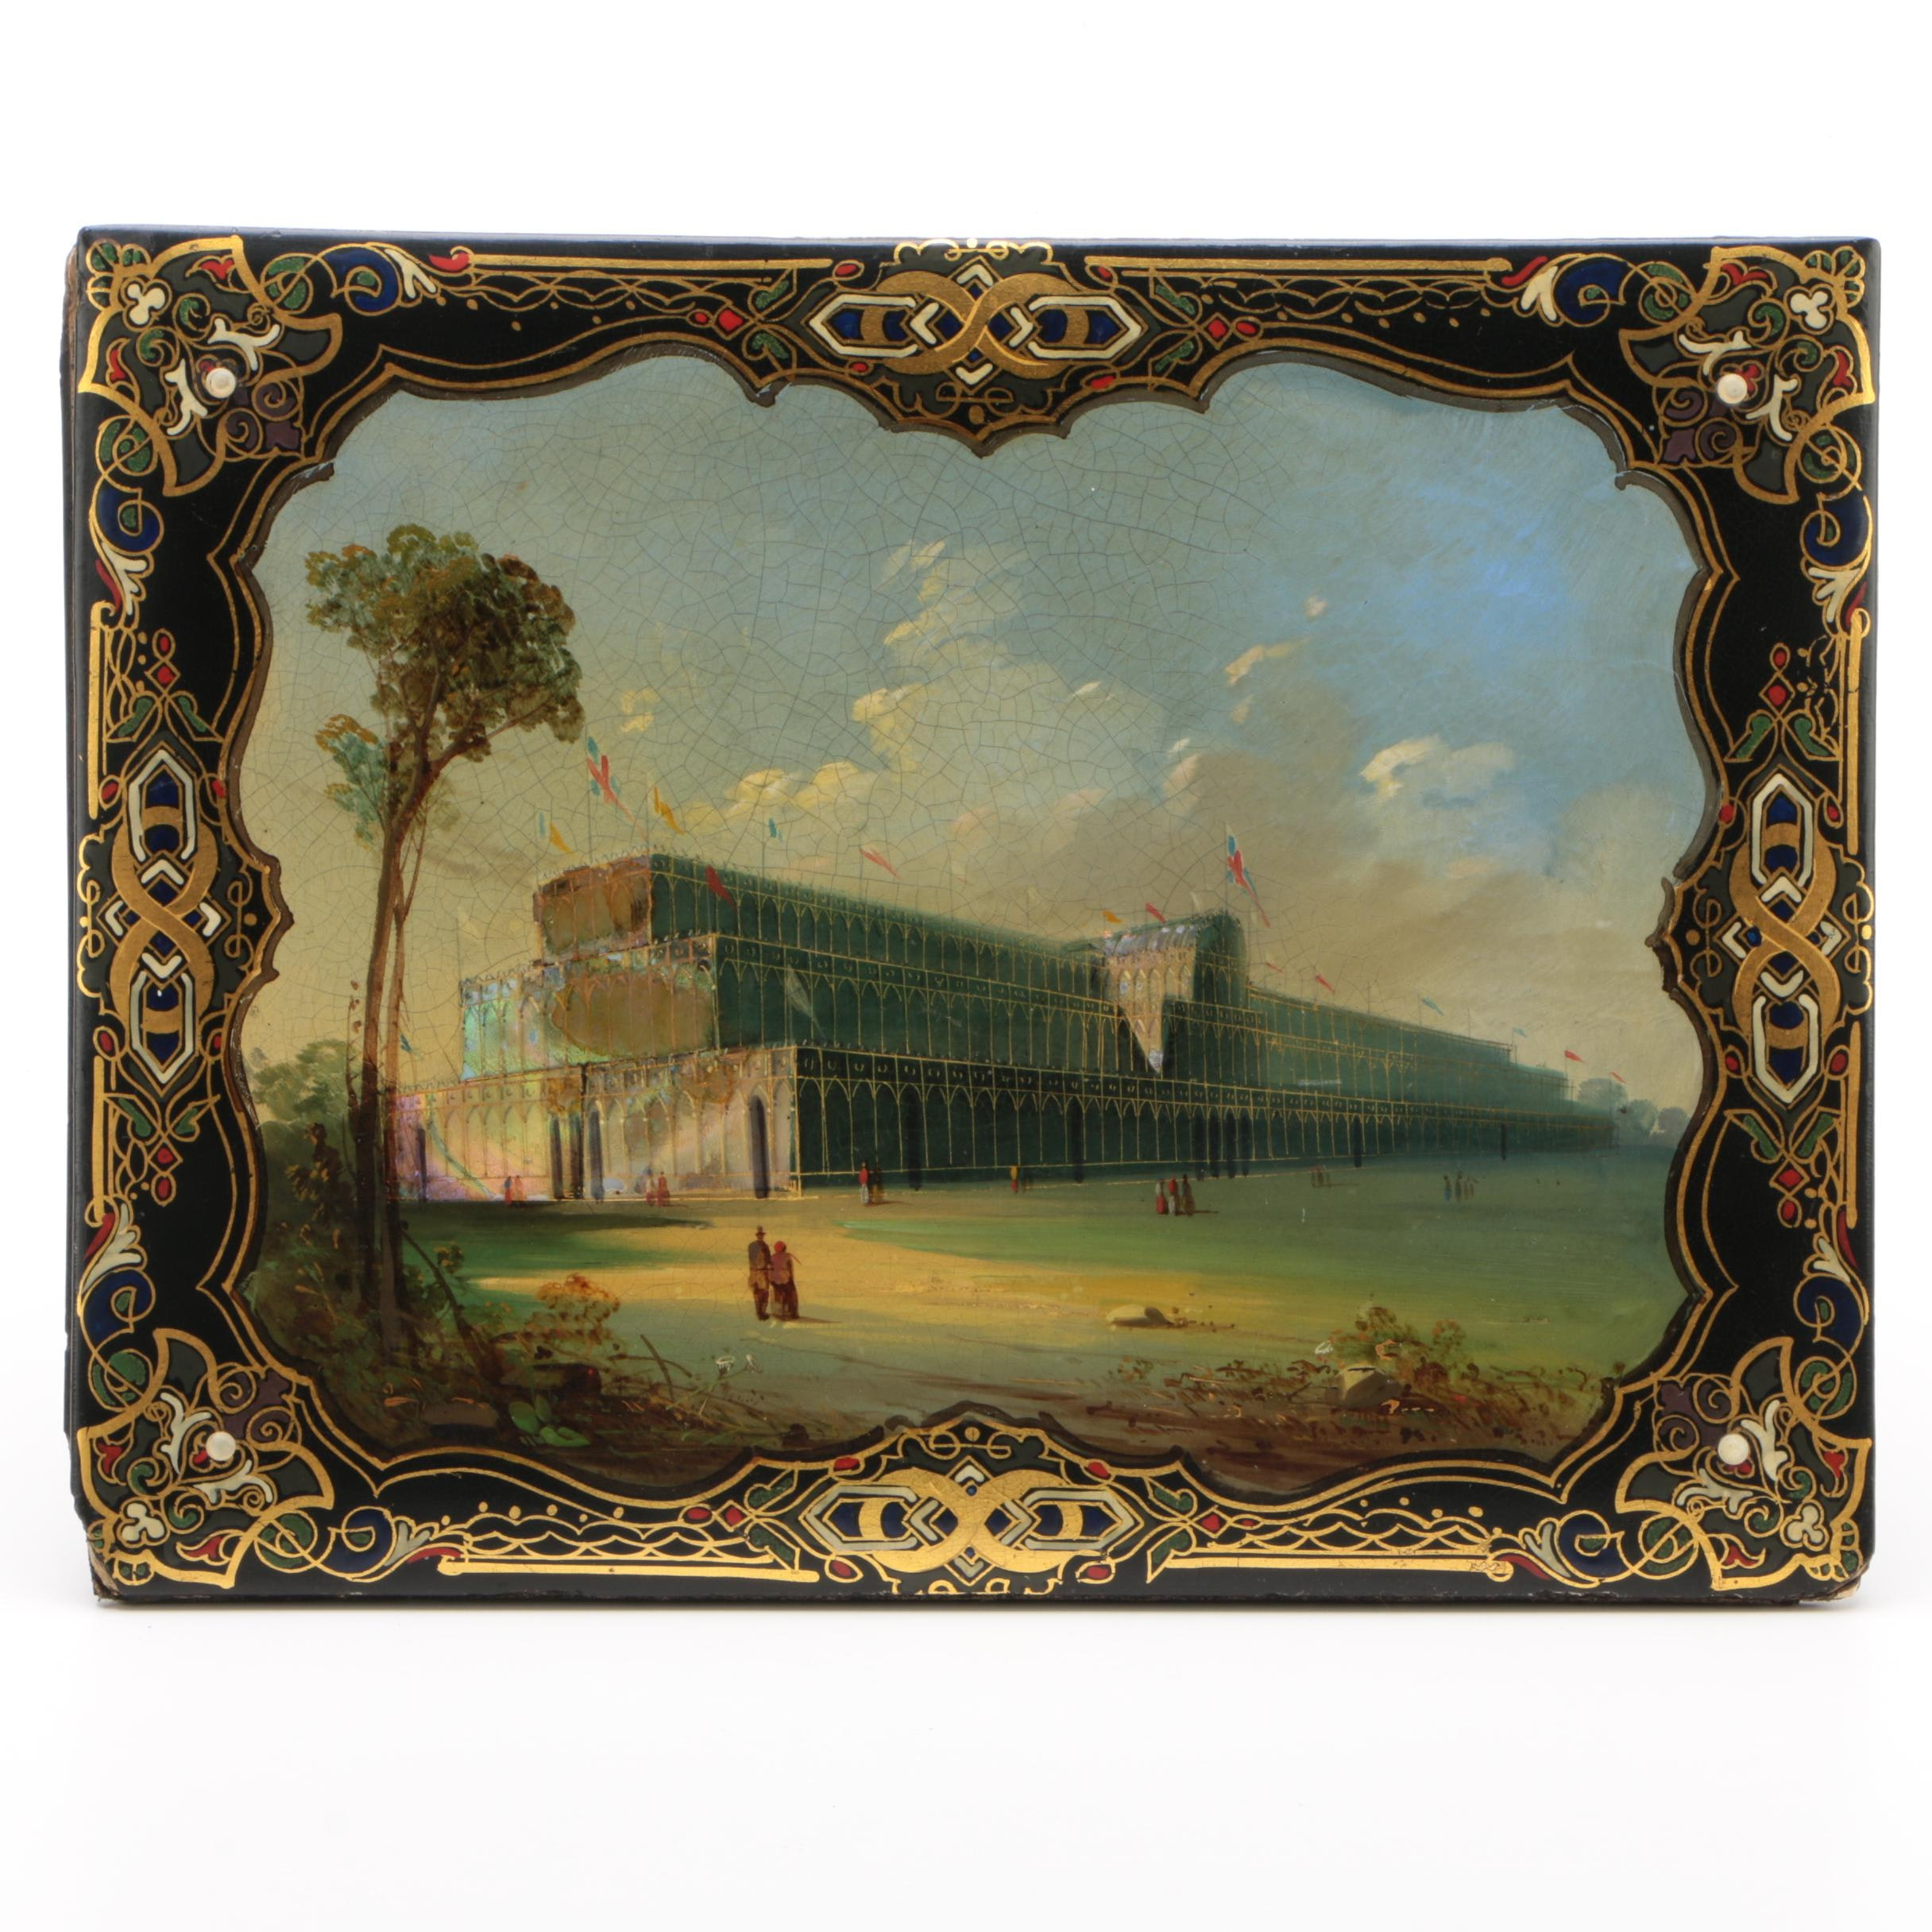 Crystal Palace Souvenir Lacquered Papier-Mâché Blotter with Abalone Inlay